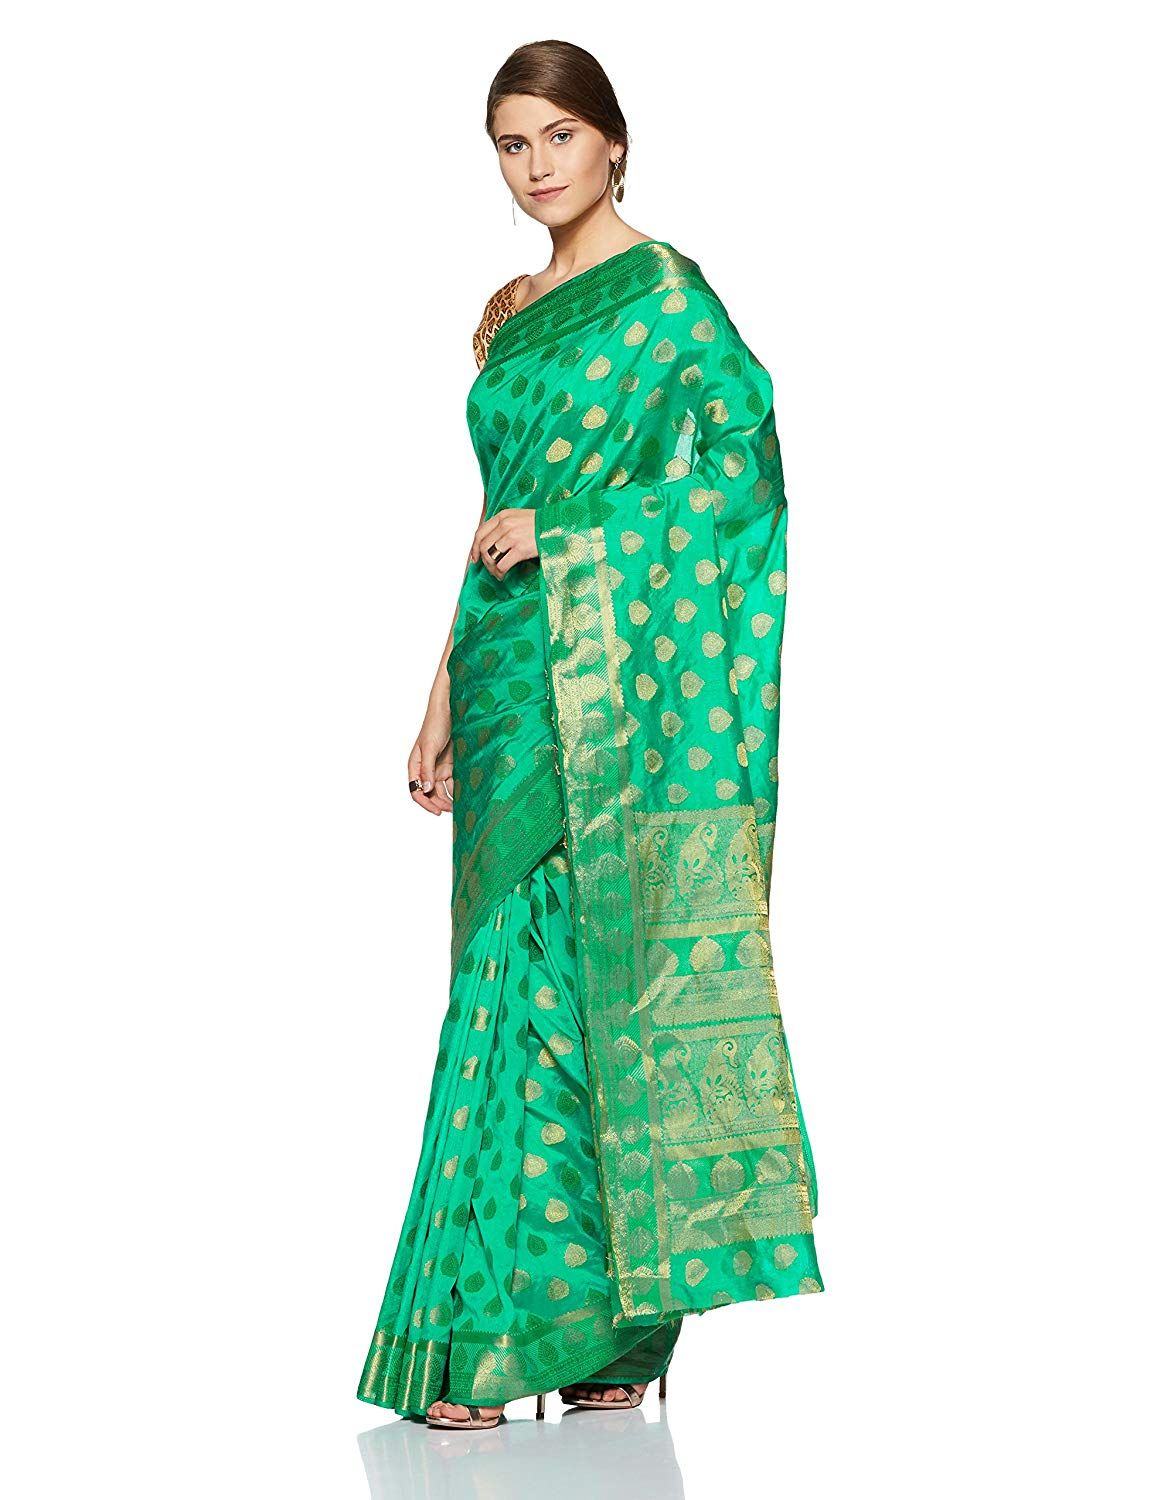 9f31b0204bfc4 Aalia Art Silk Embroidered Saree with Blouse piece (6993 Sea Green One  size)  Amazon.